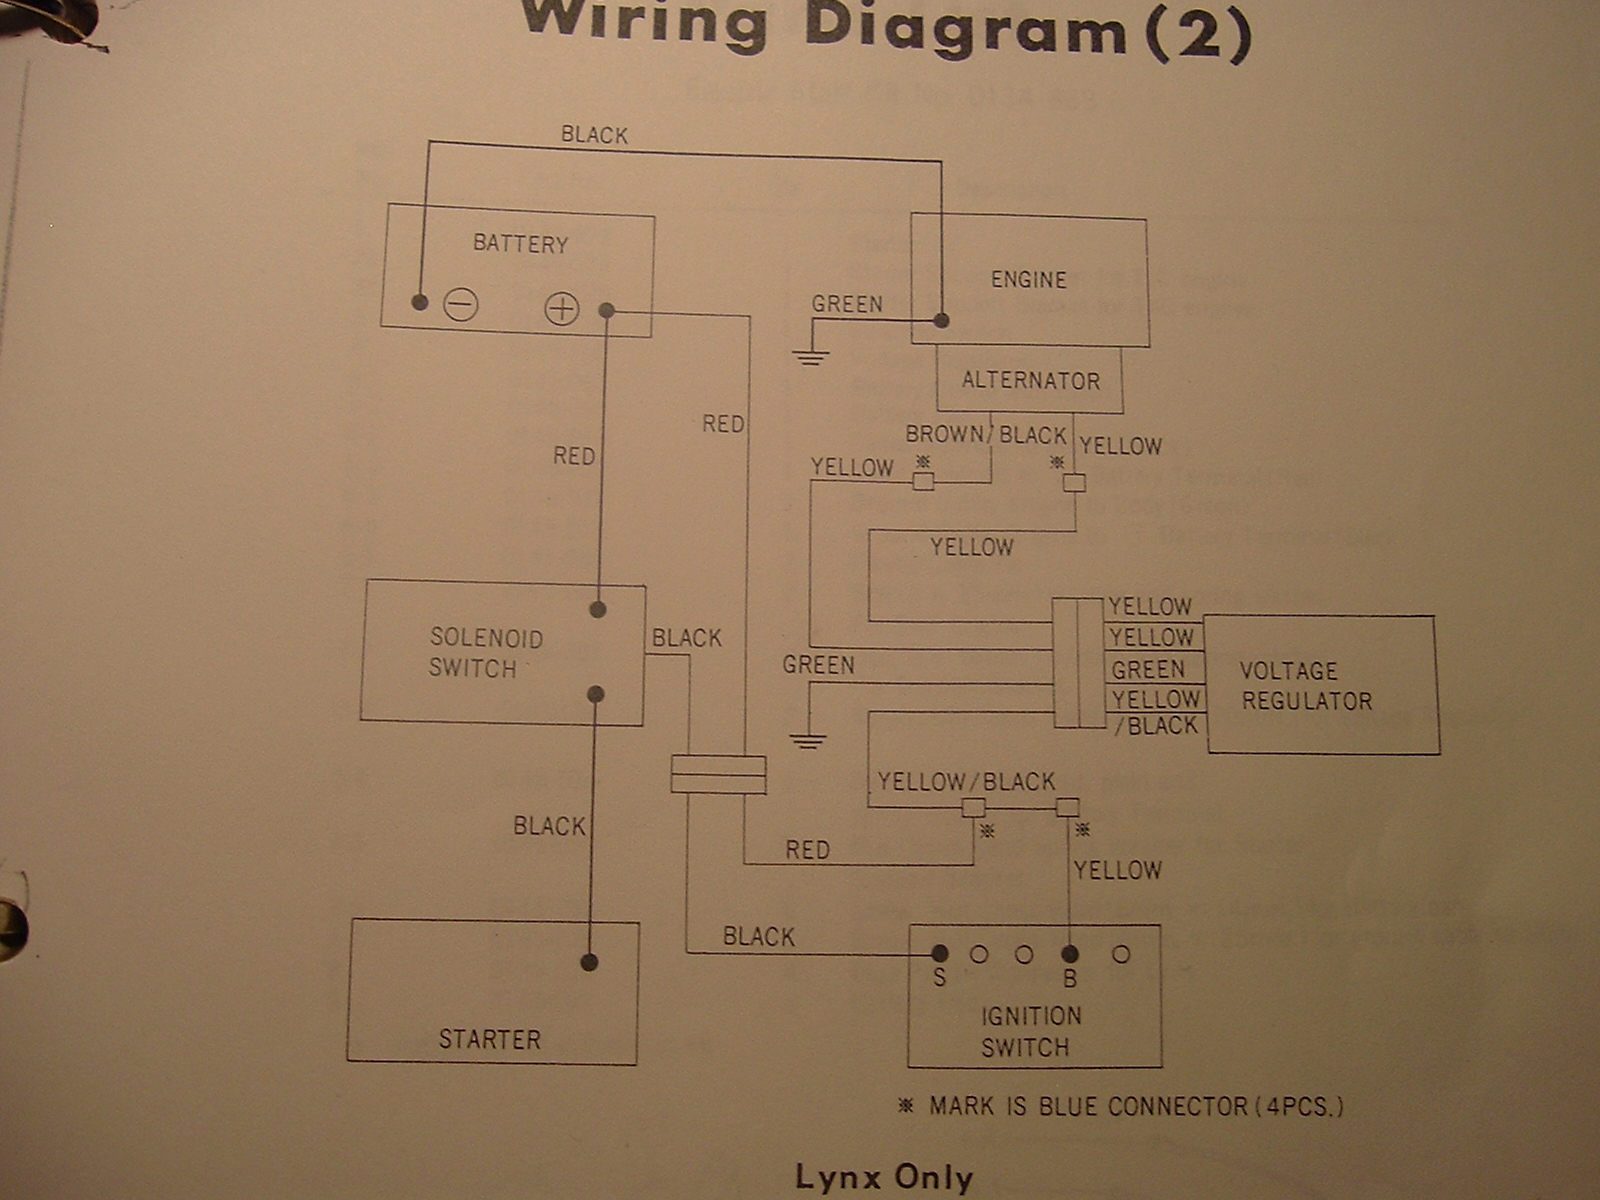 1979 Arctic Cat Jag Wiring Diagram Books Of 2008 700 Lynx 340 Auto Electrical Rh Mit Edu Uk Bitoku Me